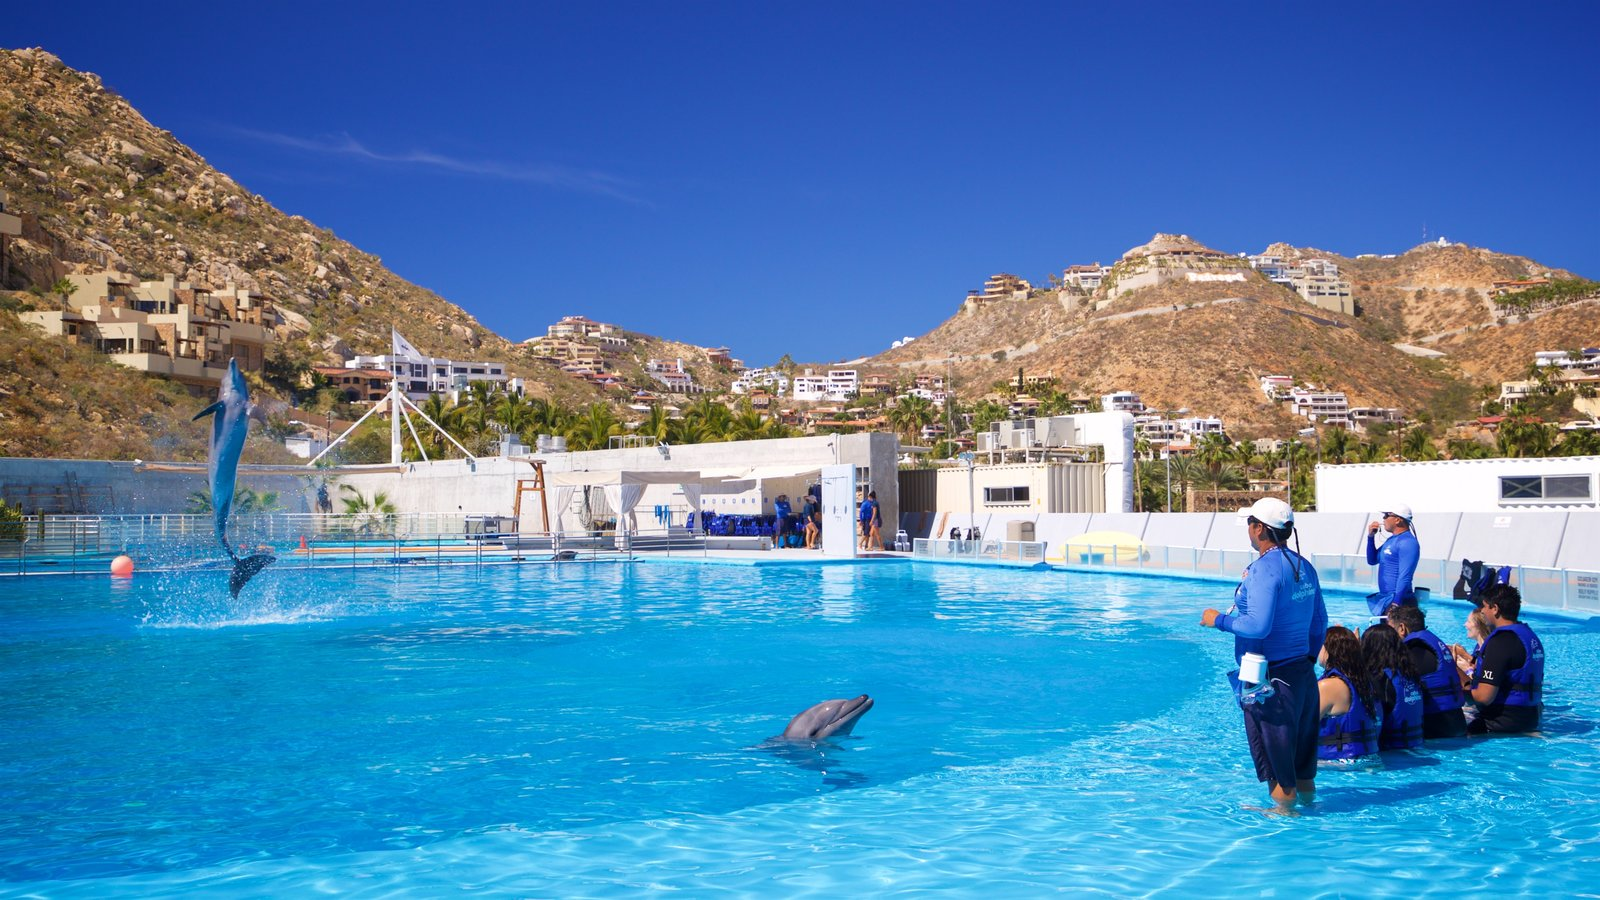 Cabo Dolphins which includes marine life and a pool as well as a small group of people